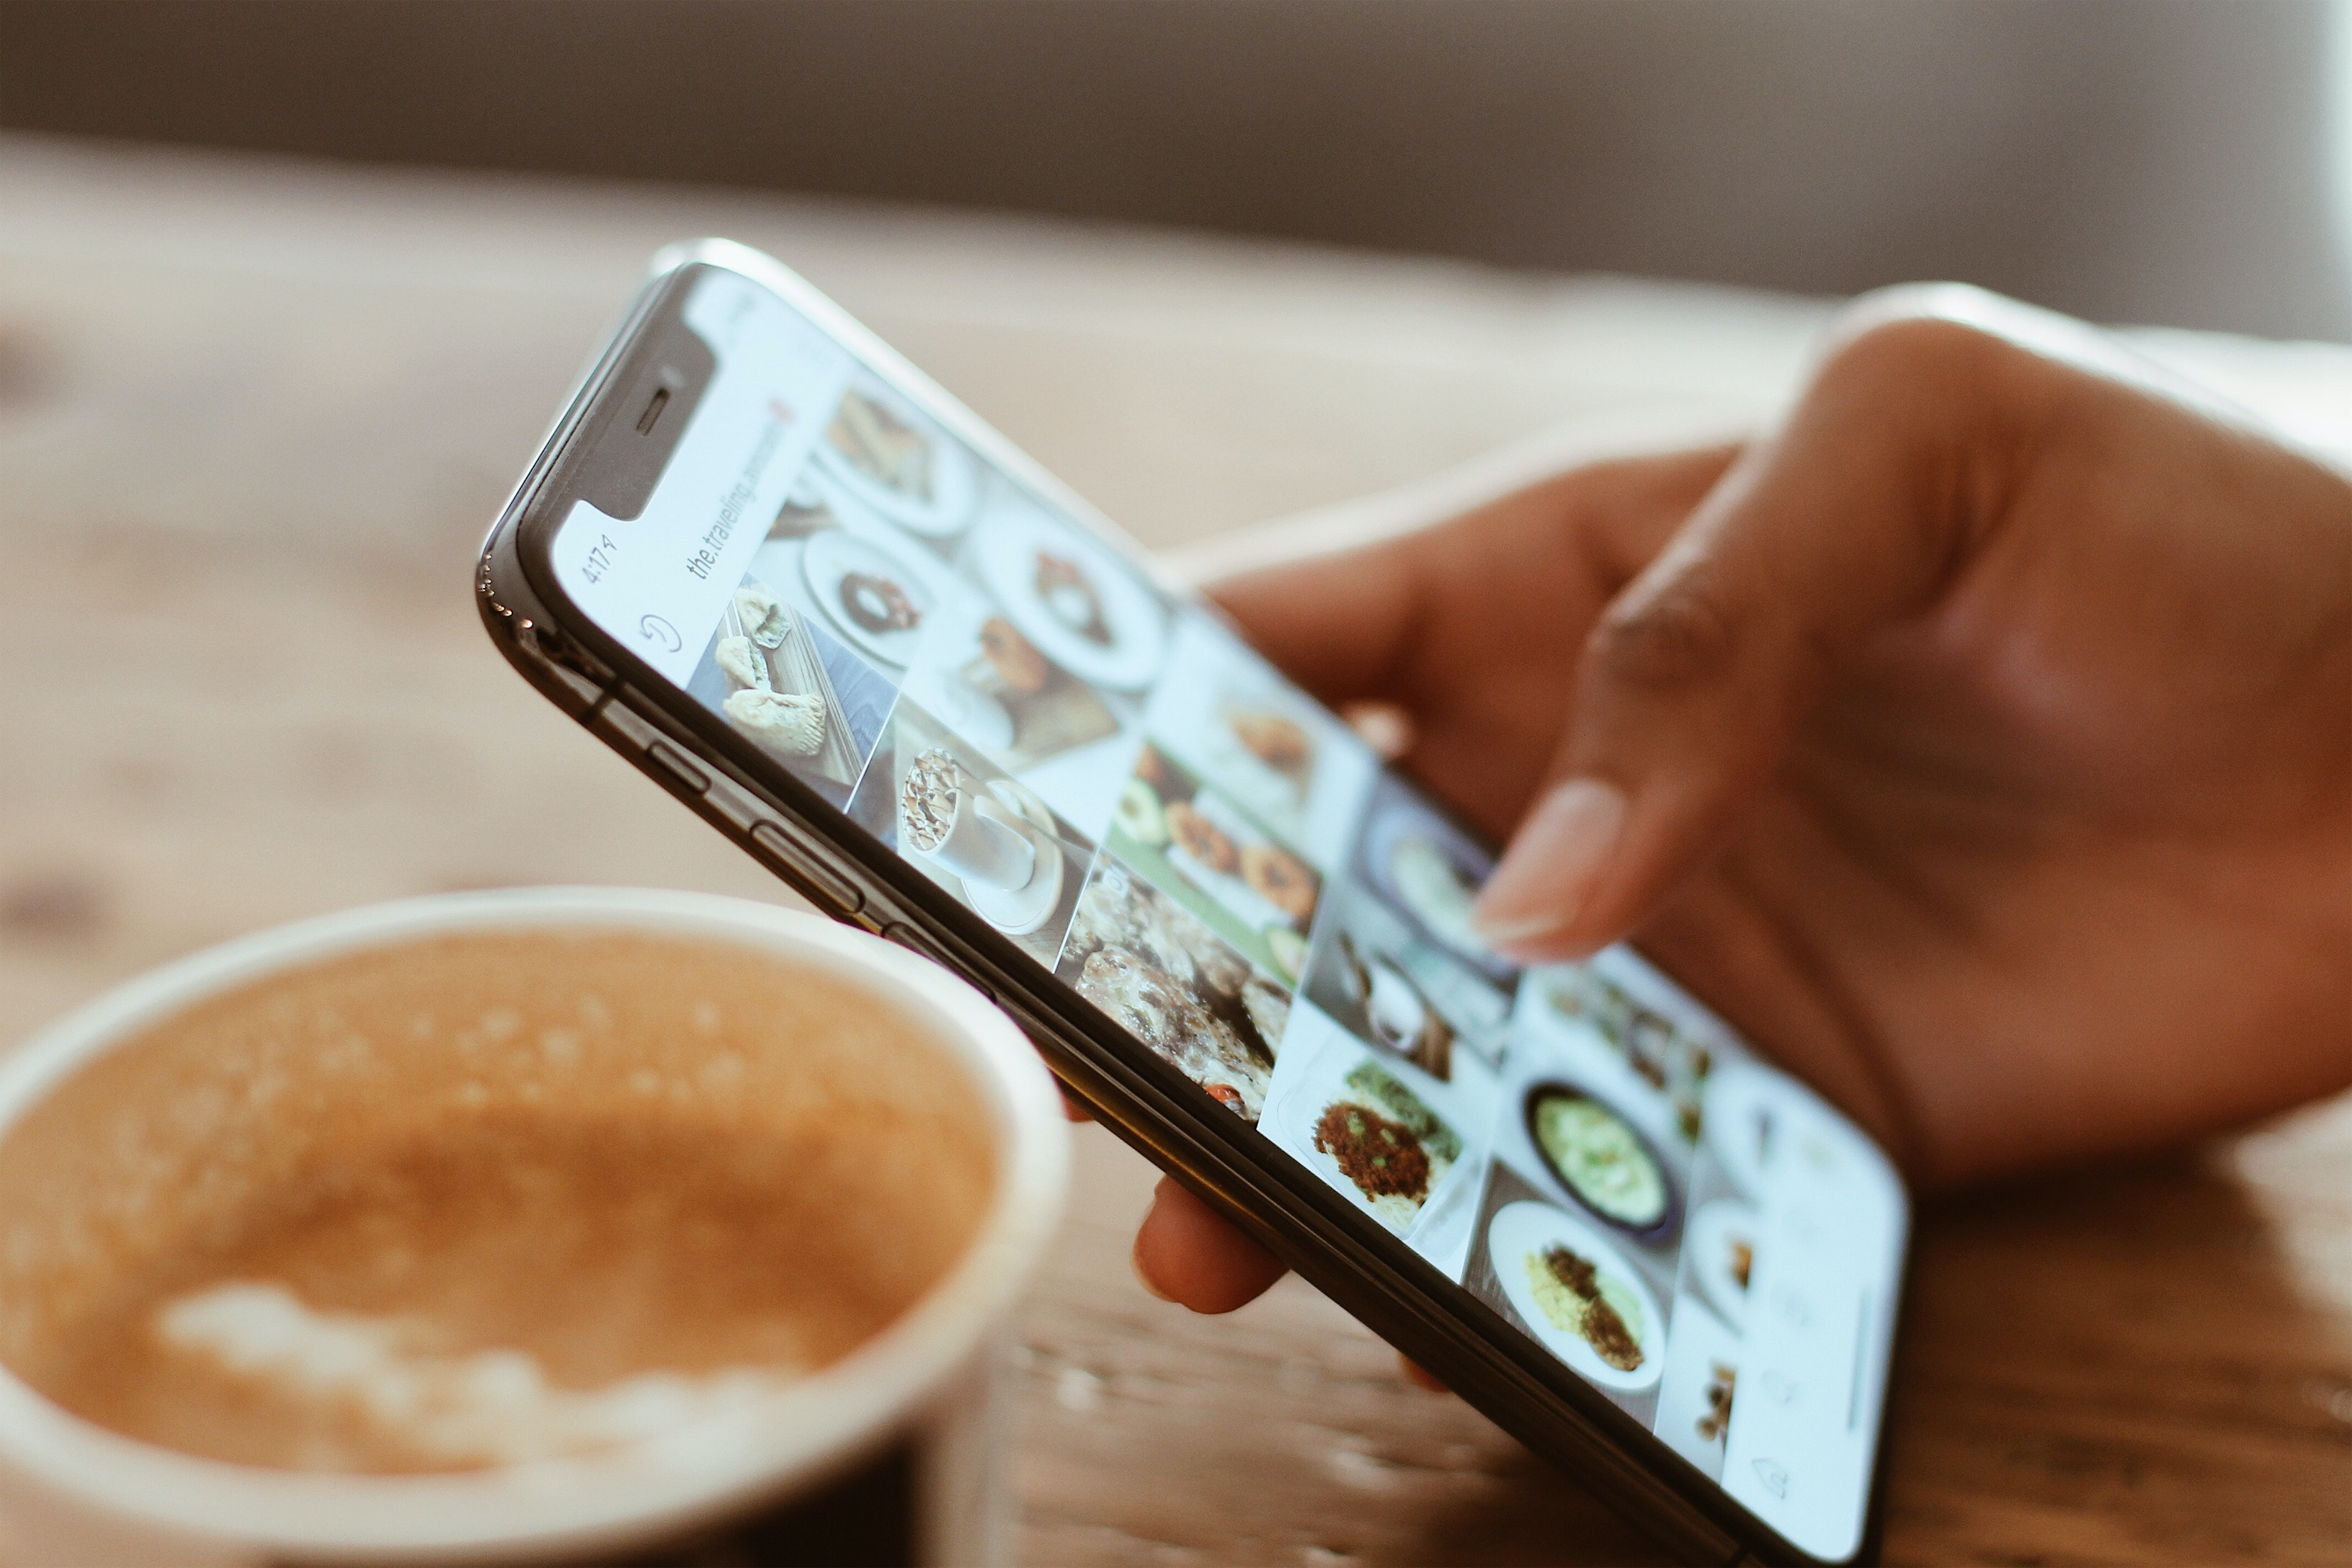 Social Media on phone. Photo credit Pexels.com.